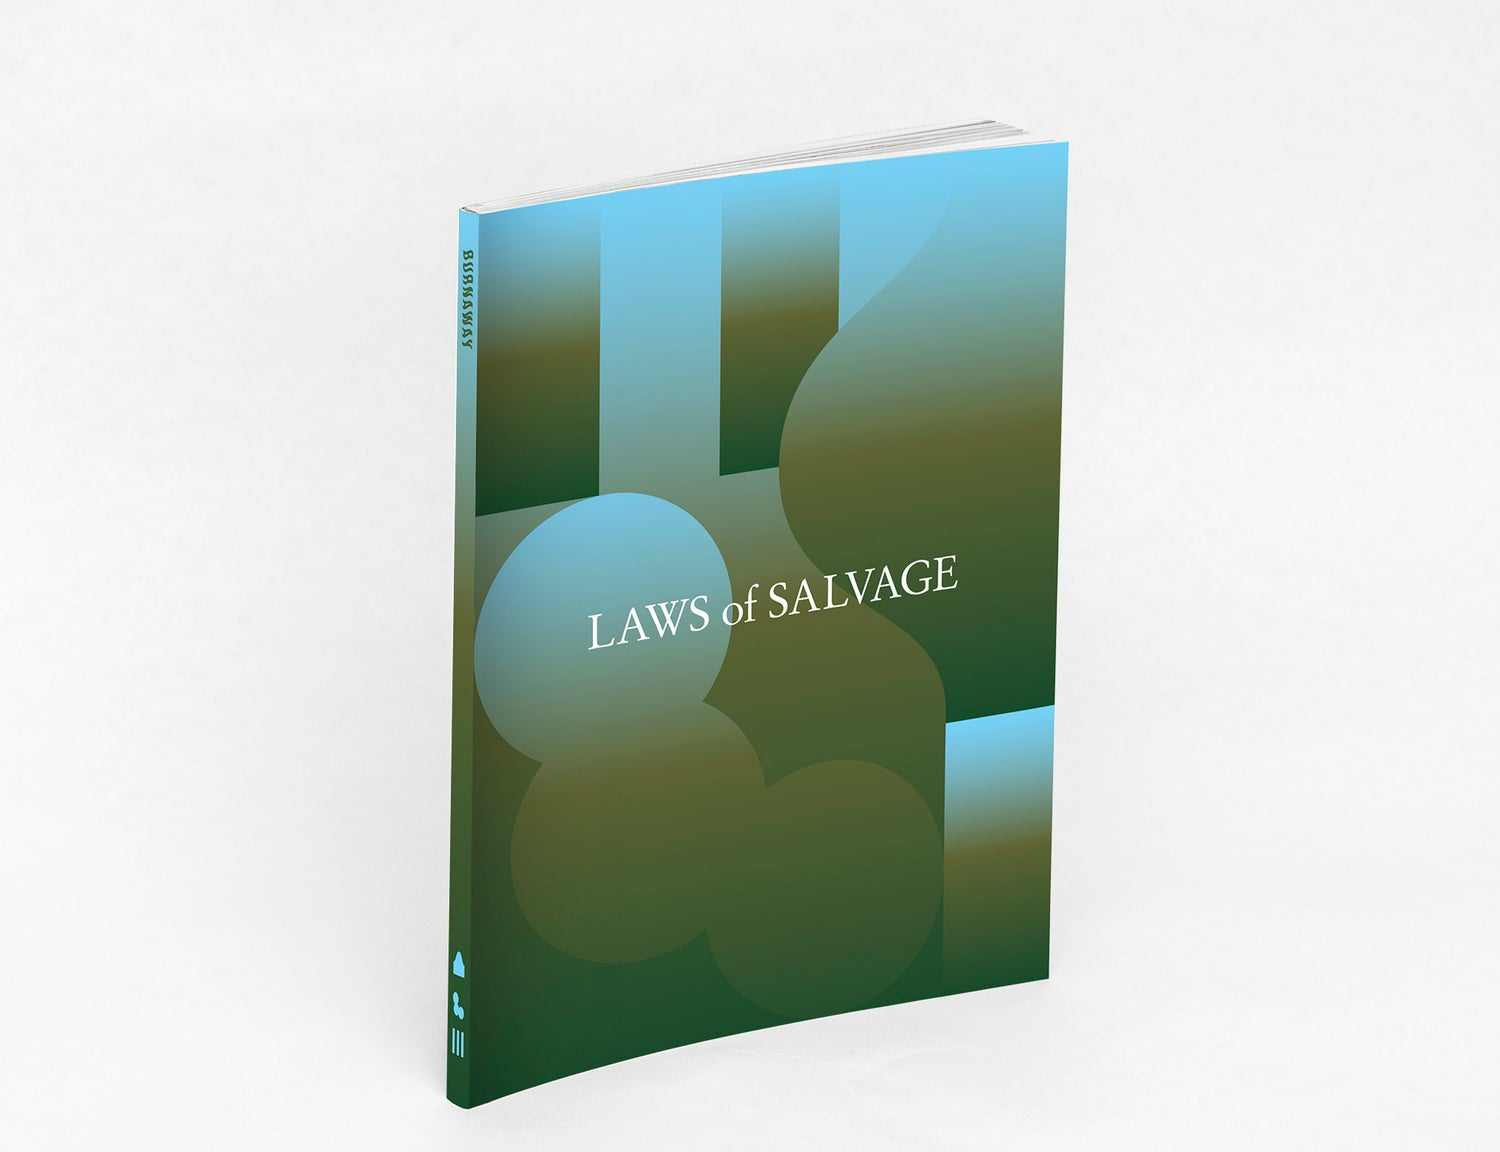 Image of Laws of Salvage: The 2020 Burnaway Reader